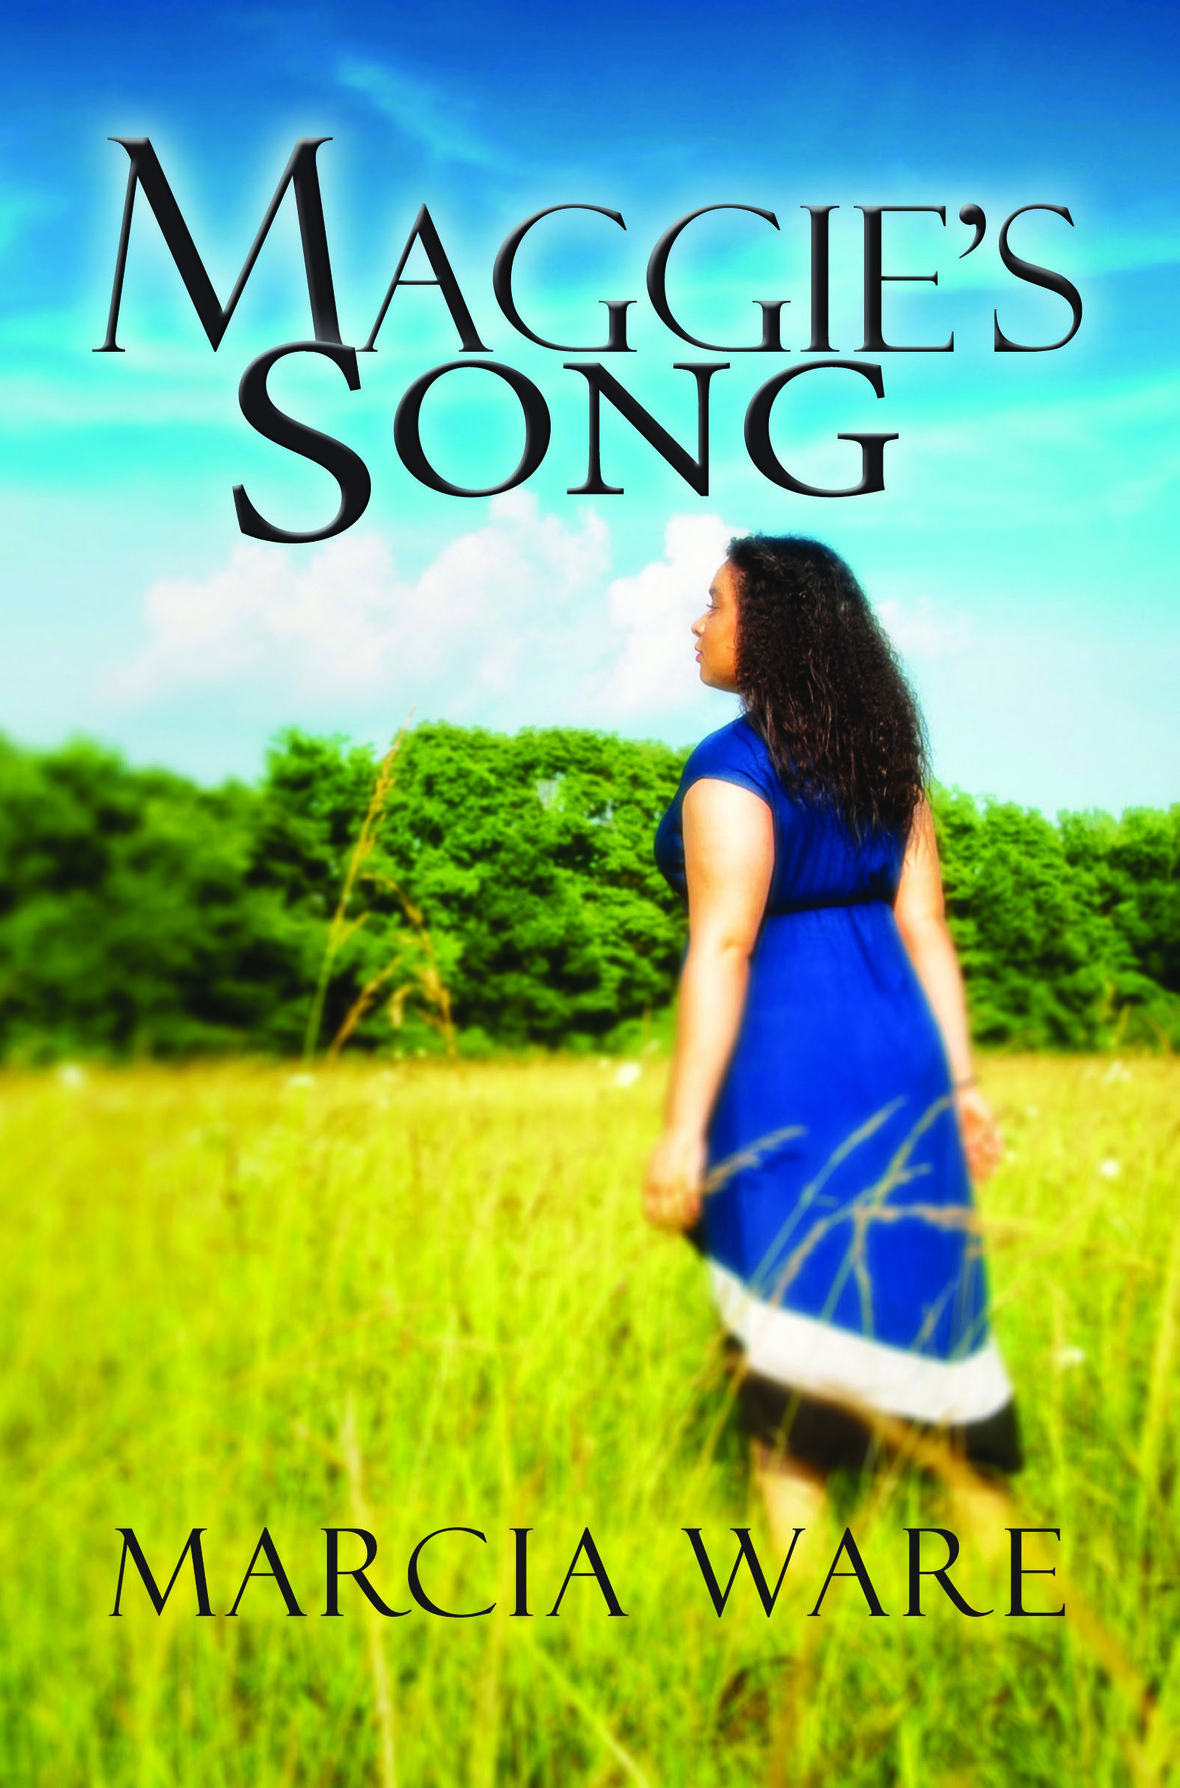 Maggie sSong Cover Final